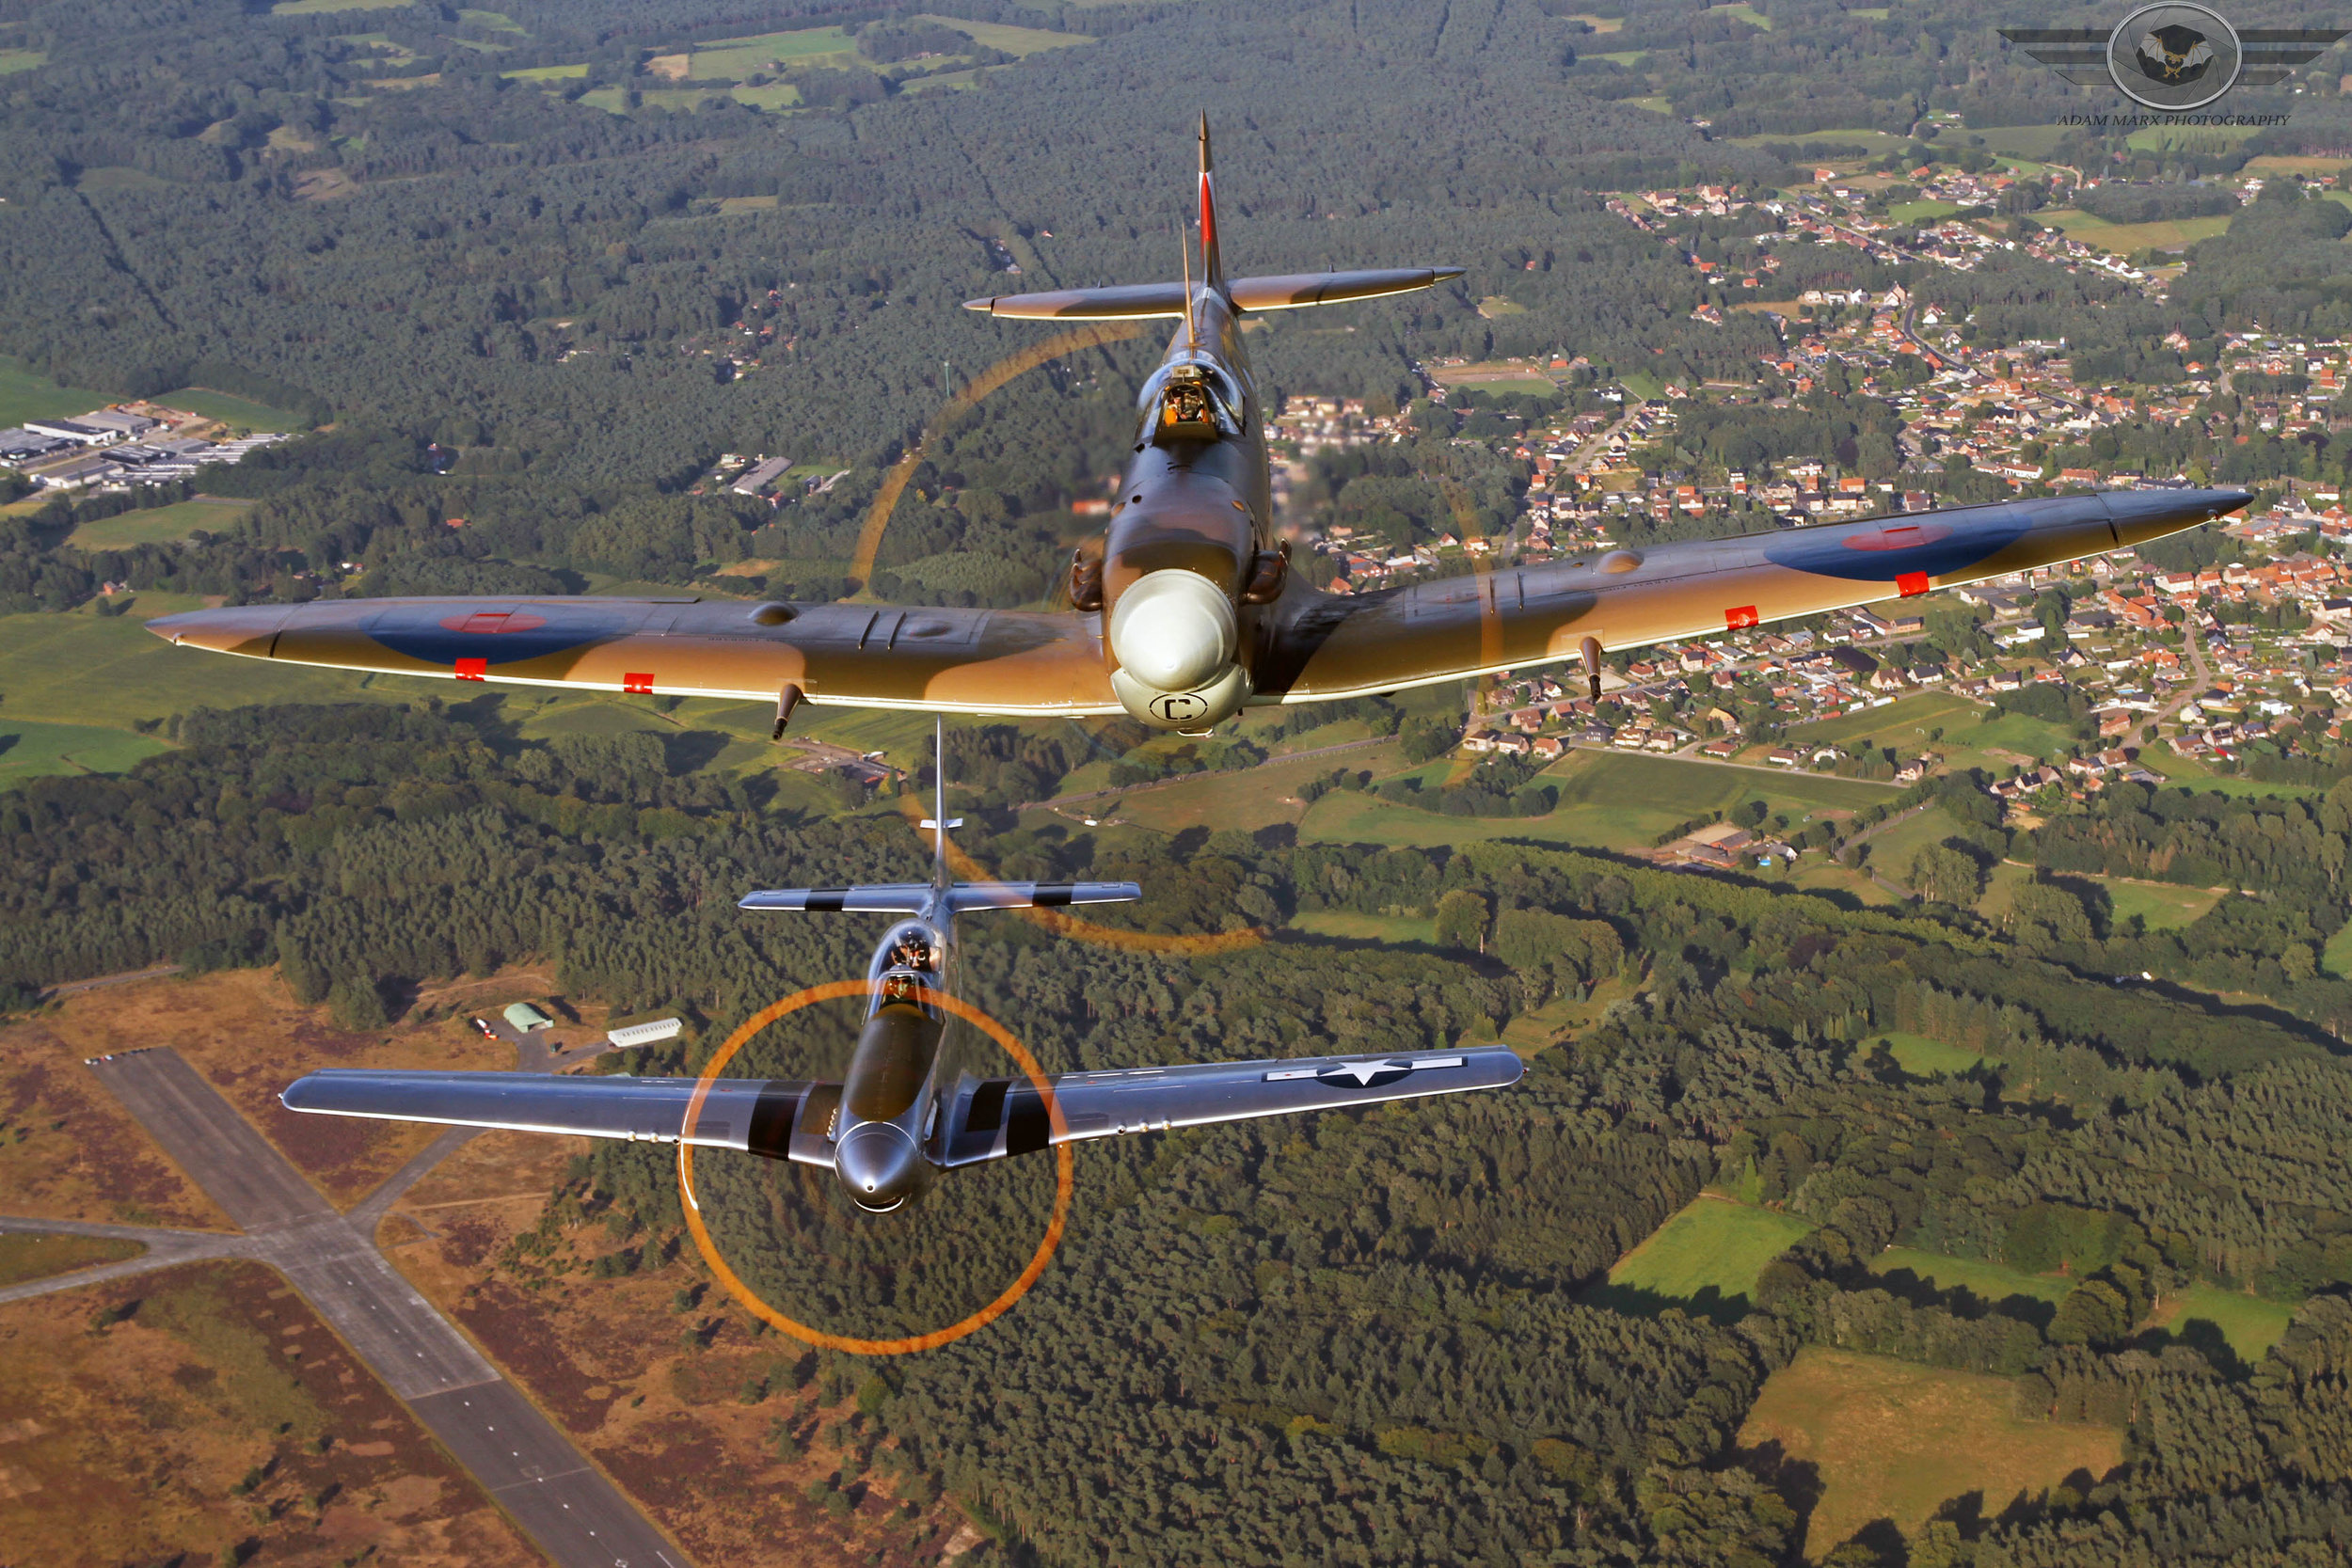 2 classic's in one shot. P-51 Mustang and Supermarine Spitfire.